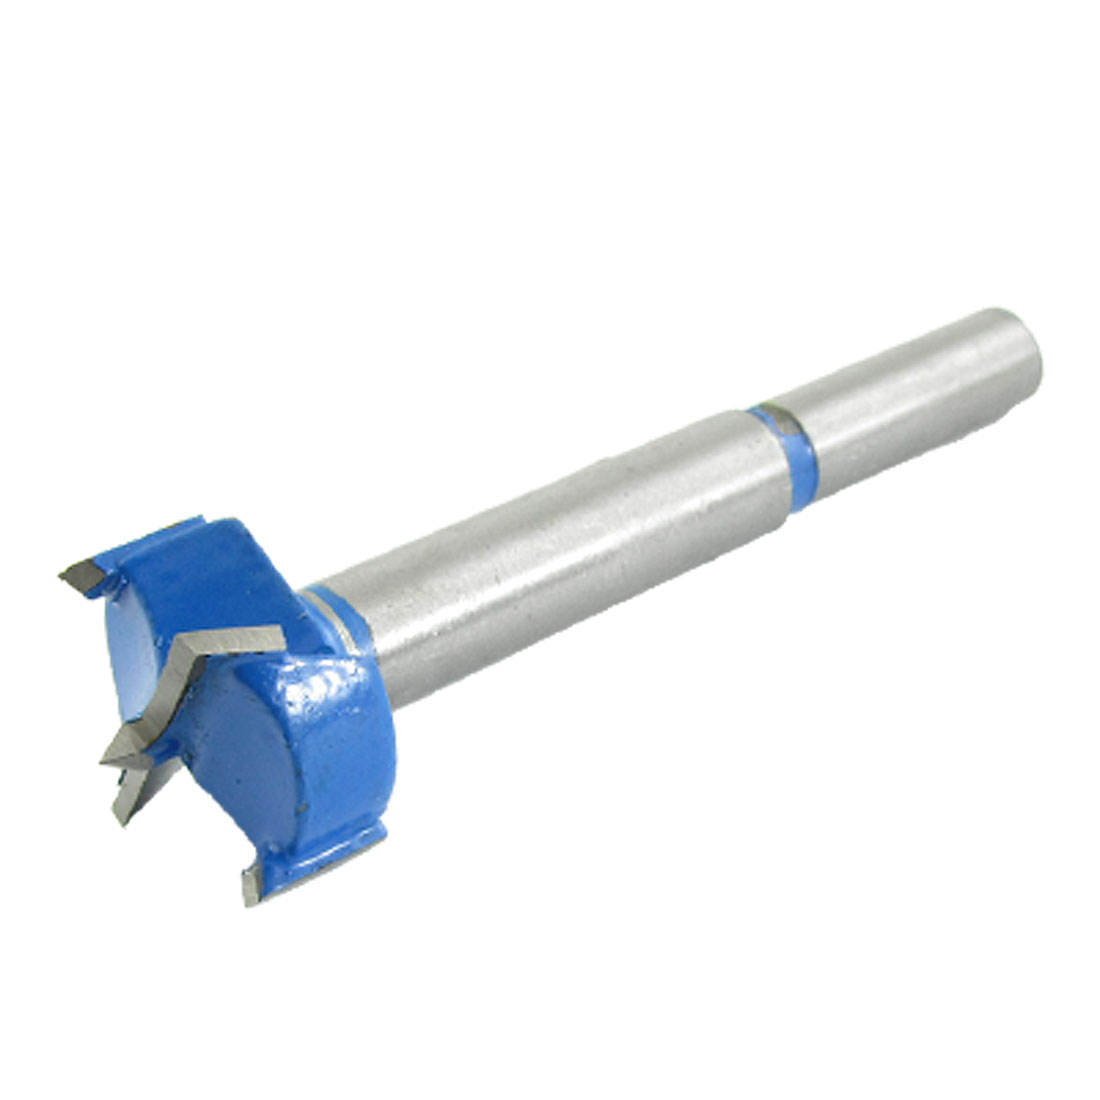 22mm Cutting Diameter Blue Hinge Boring Drill Bit for Carpentry